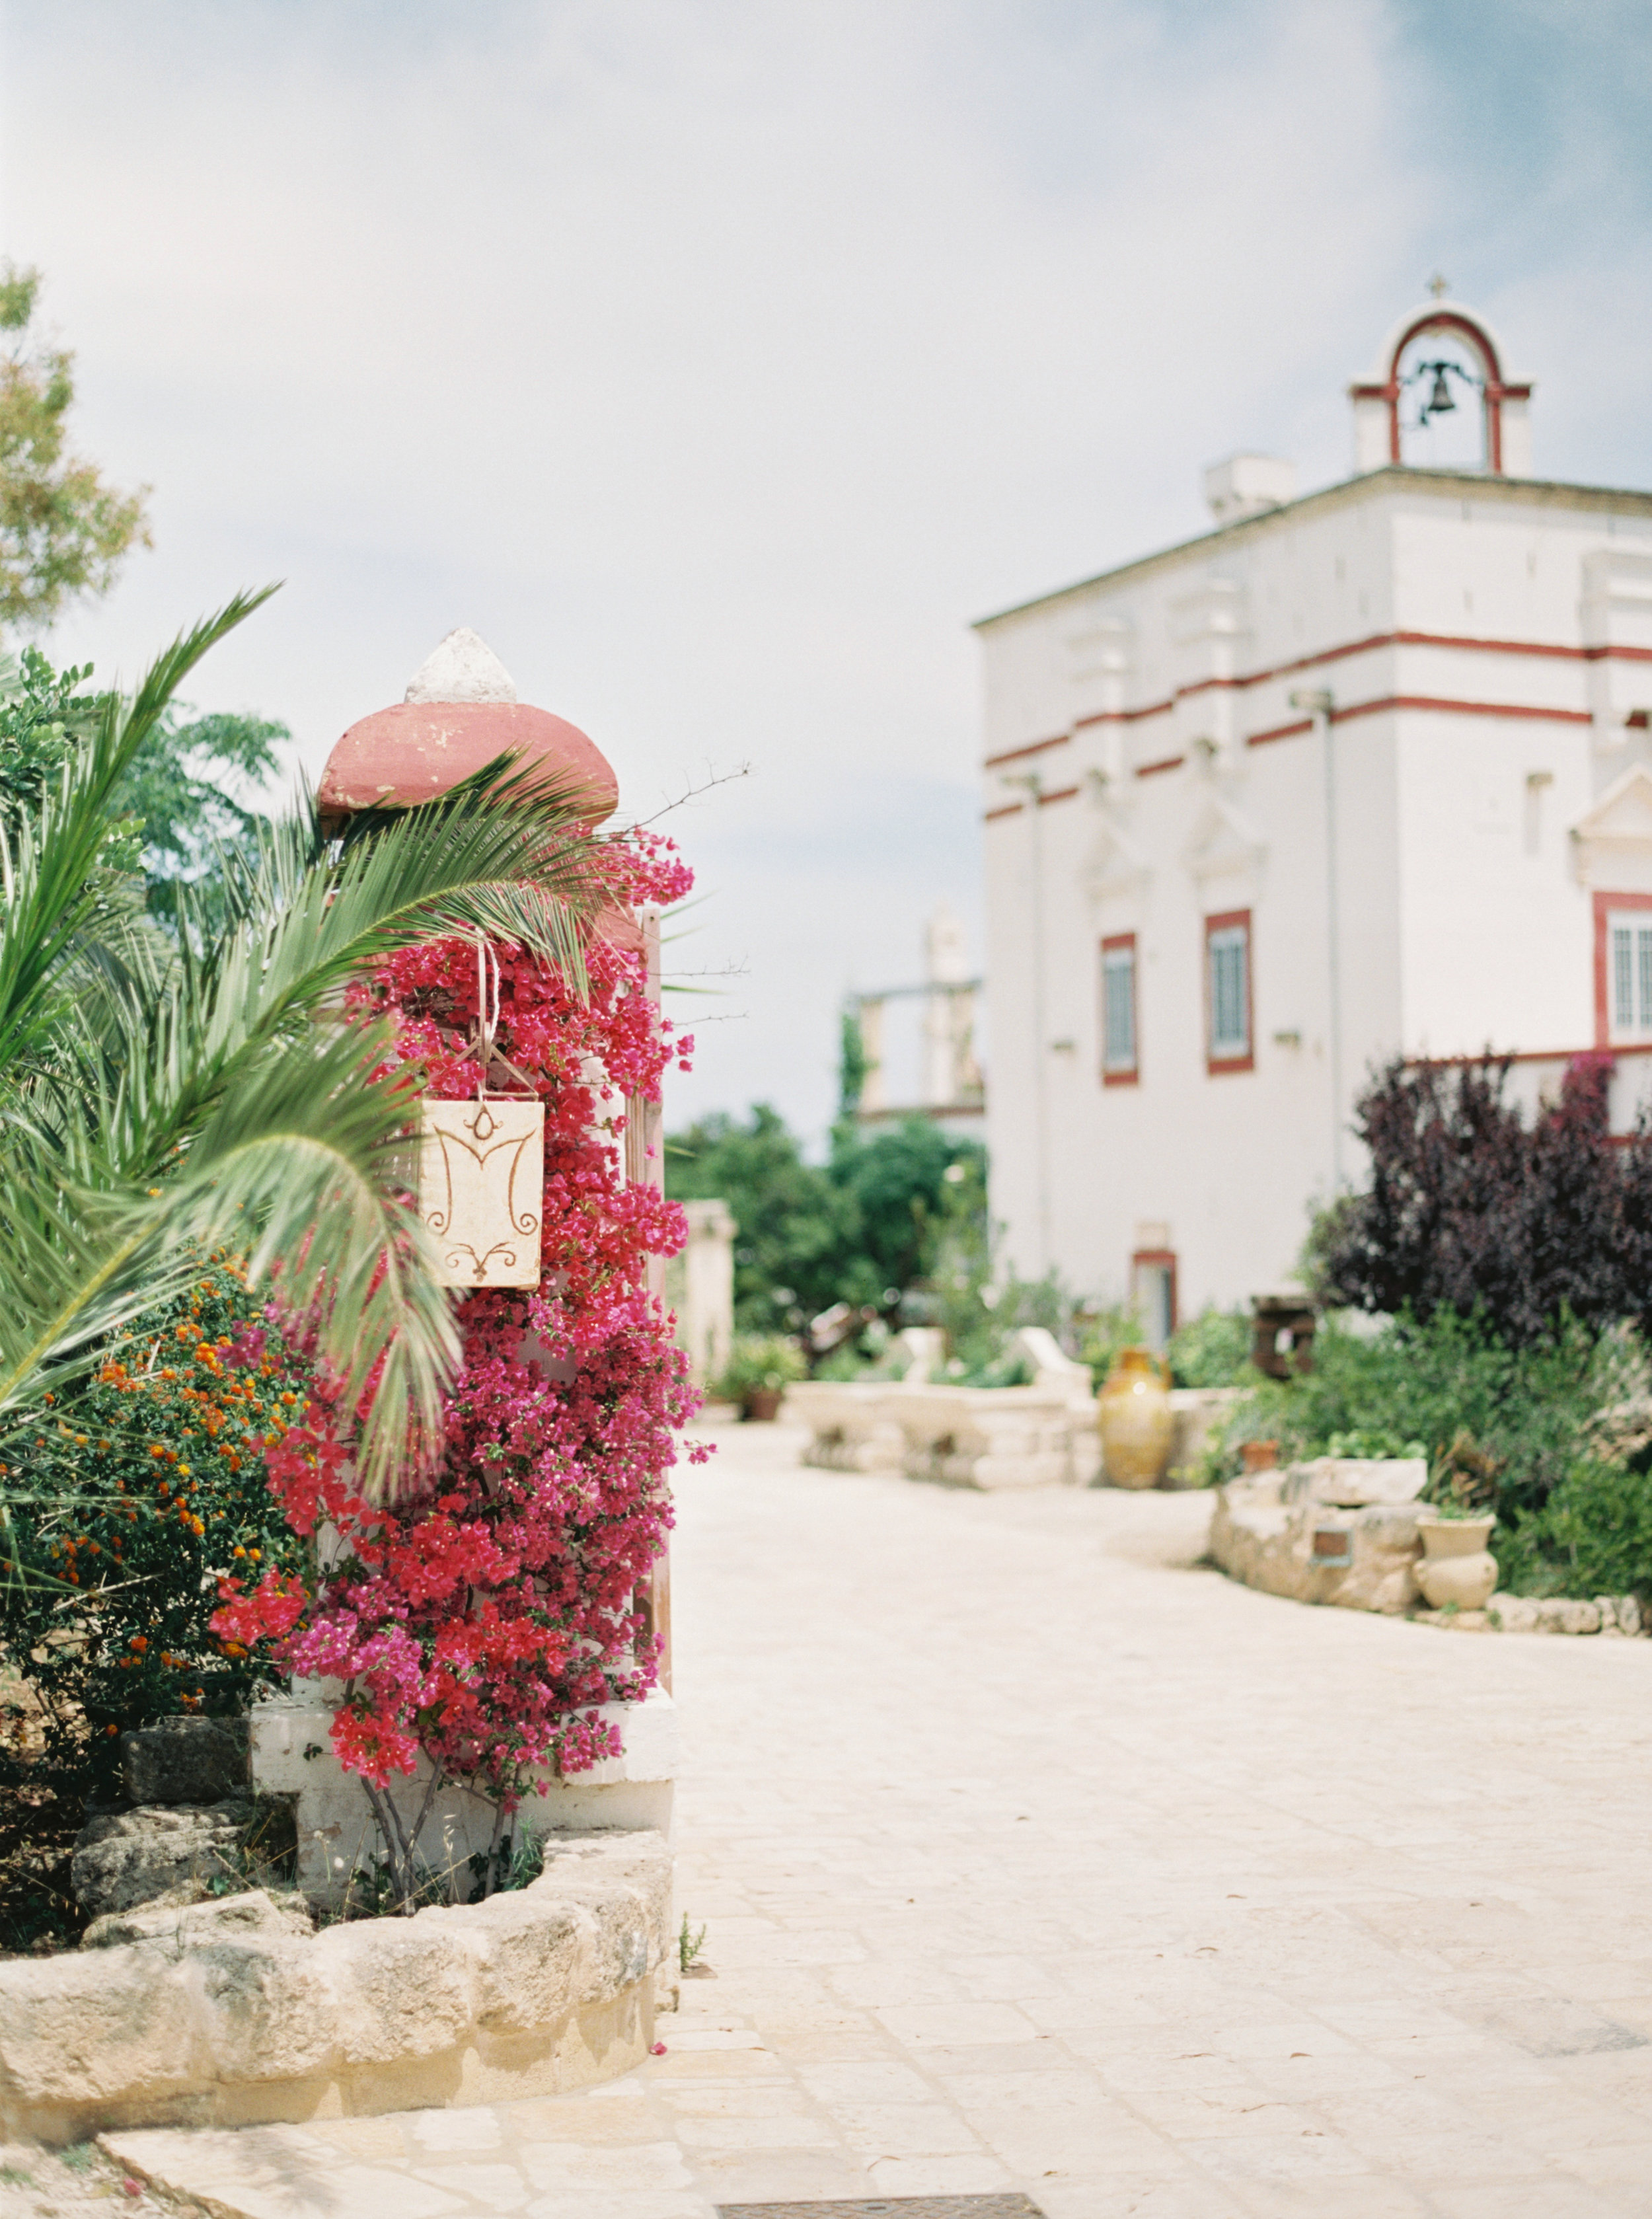 Meggie Francisco Events plans a wedding a Masseria Montenapoleone in Puglia, Italy. Photography by Tracy Enoch, videography by Innar Hunt.